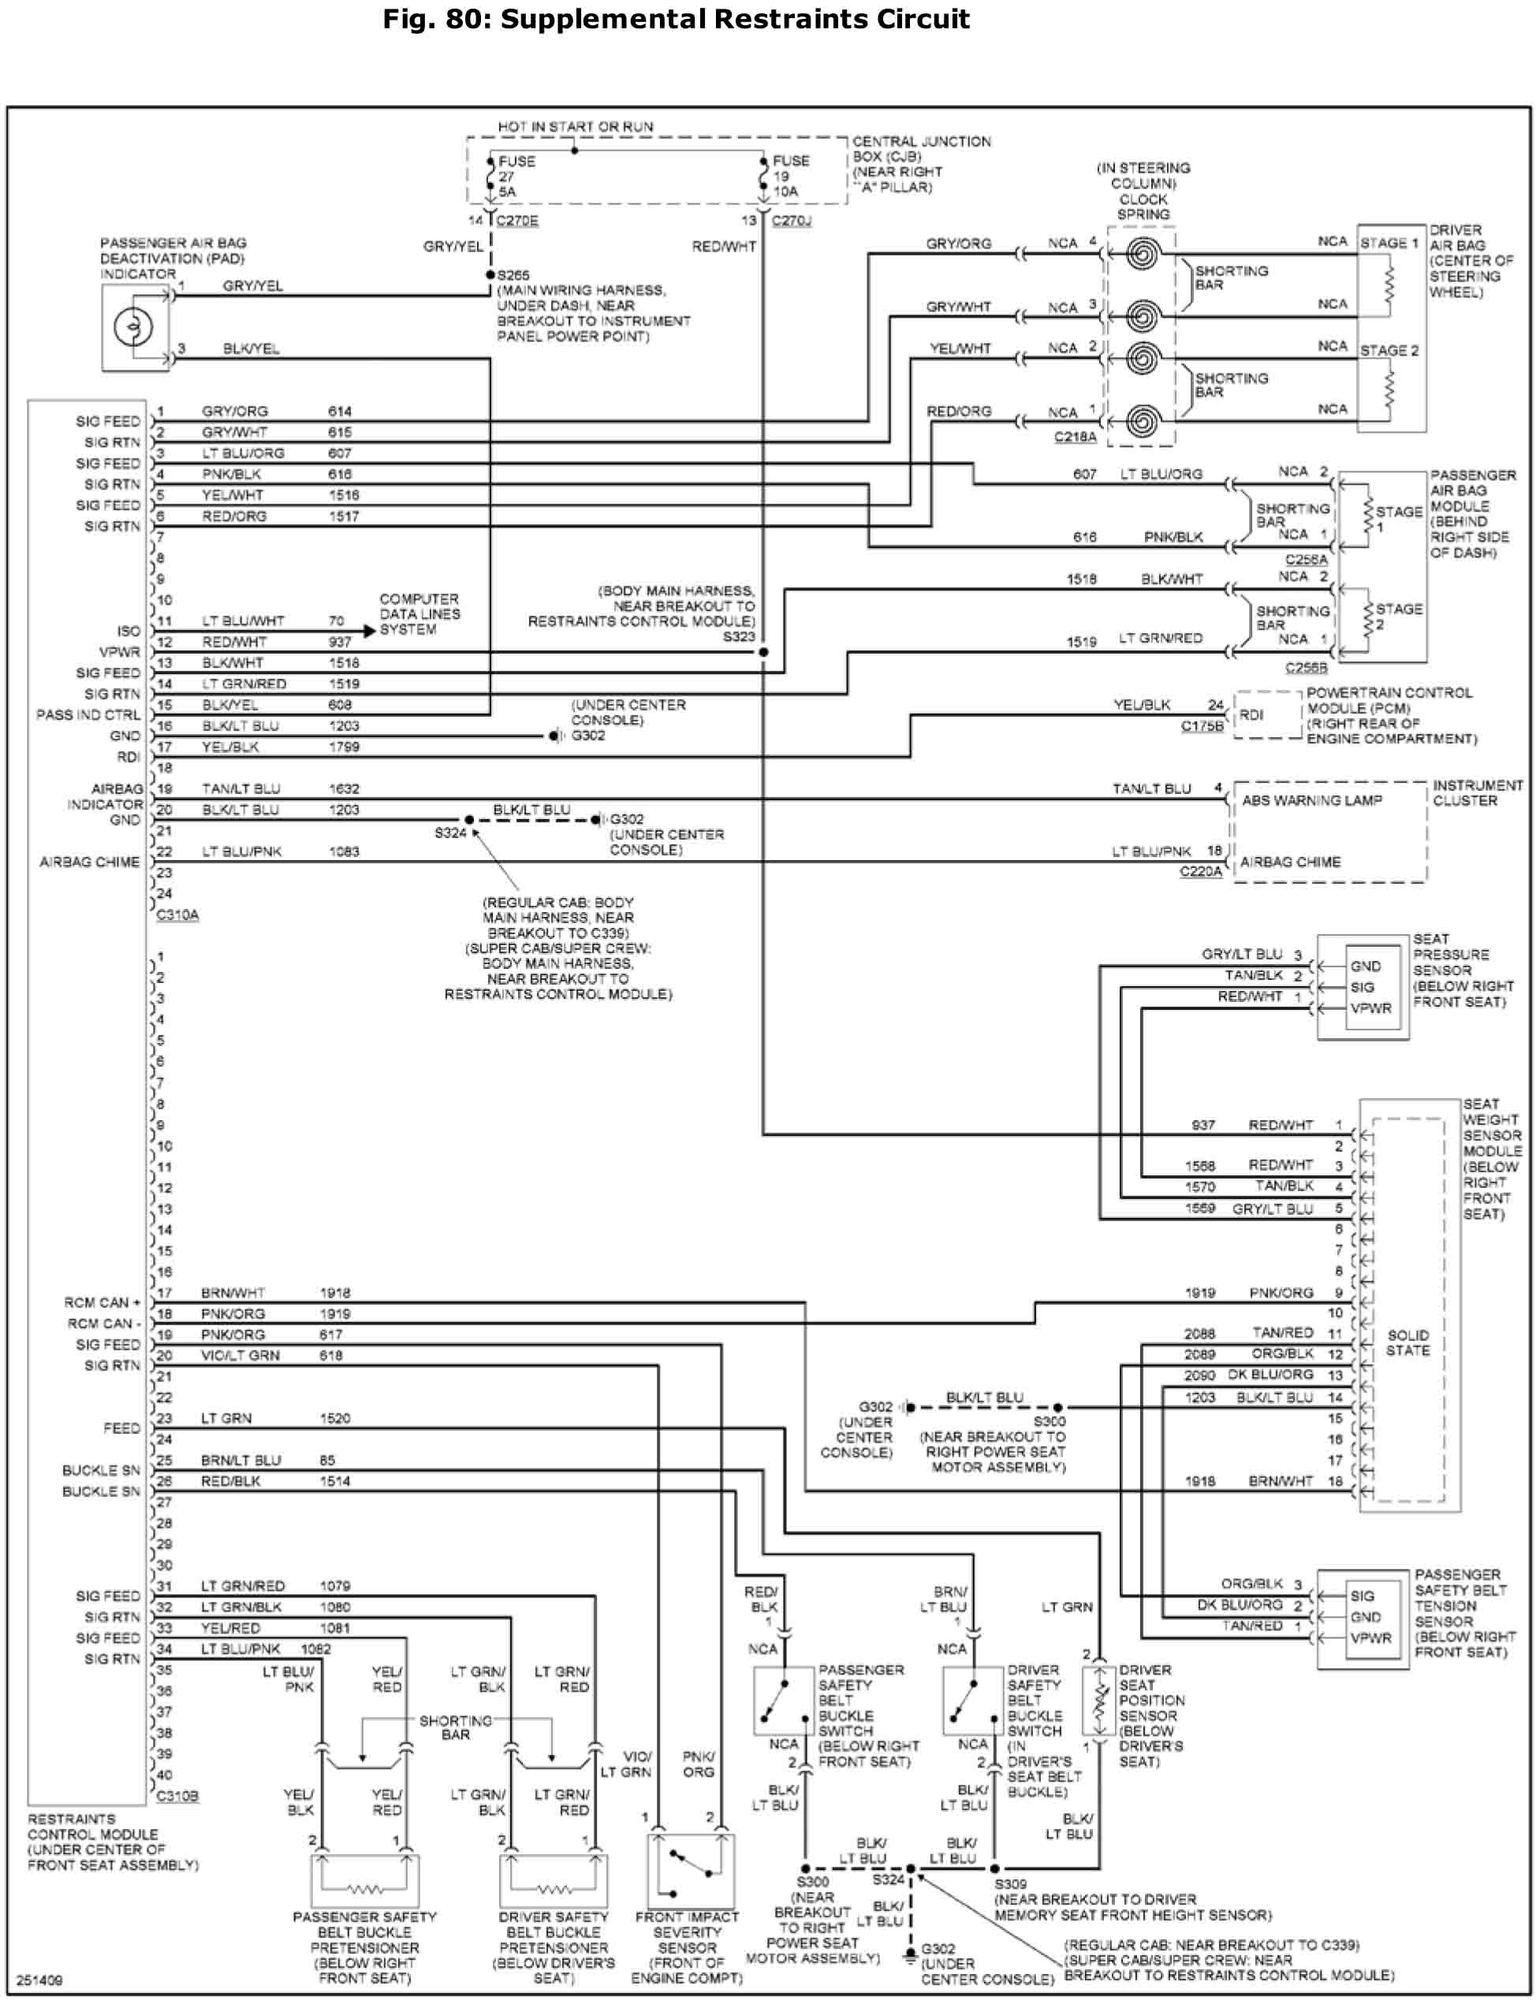 2004 Chevy Malibu Clic Engine Diagram. Engine. Auto Wiring